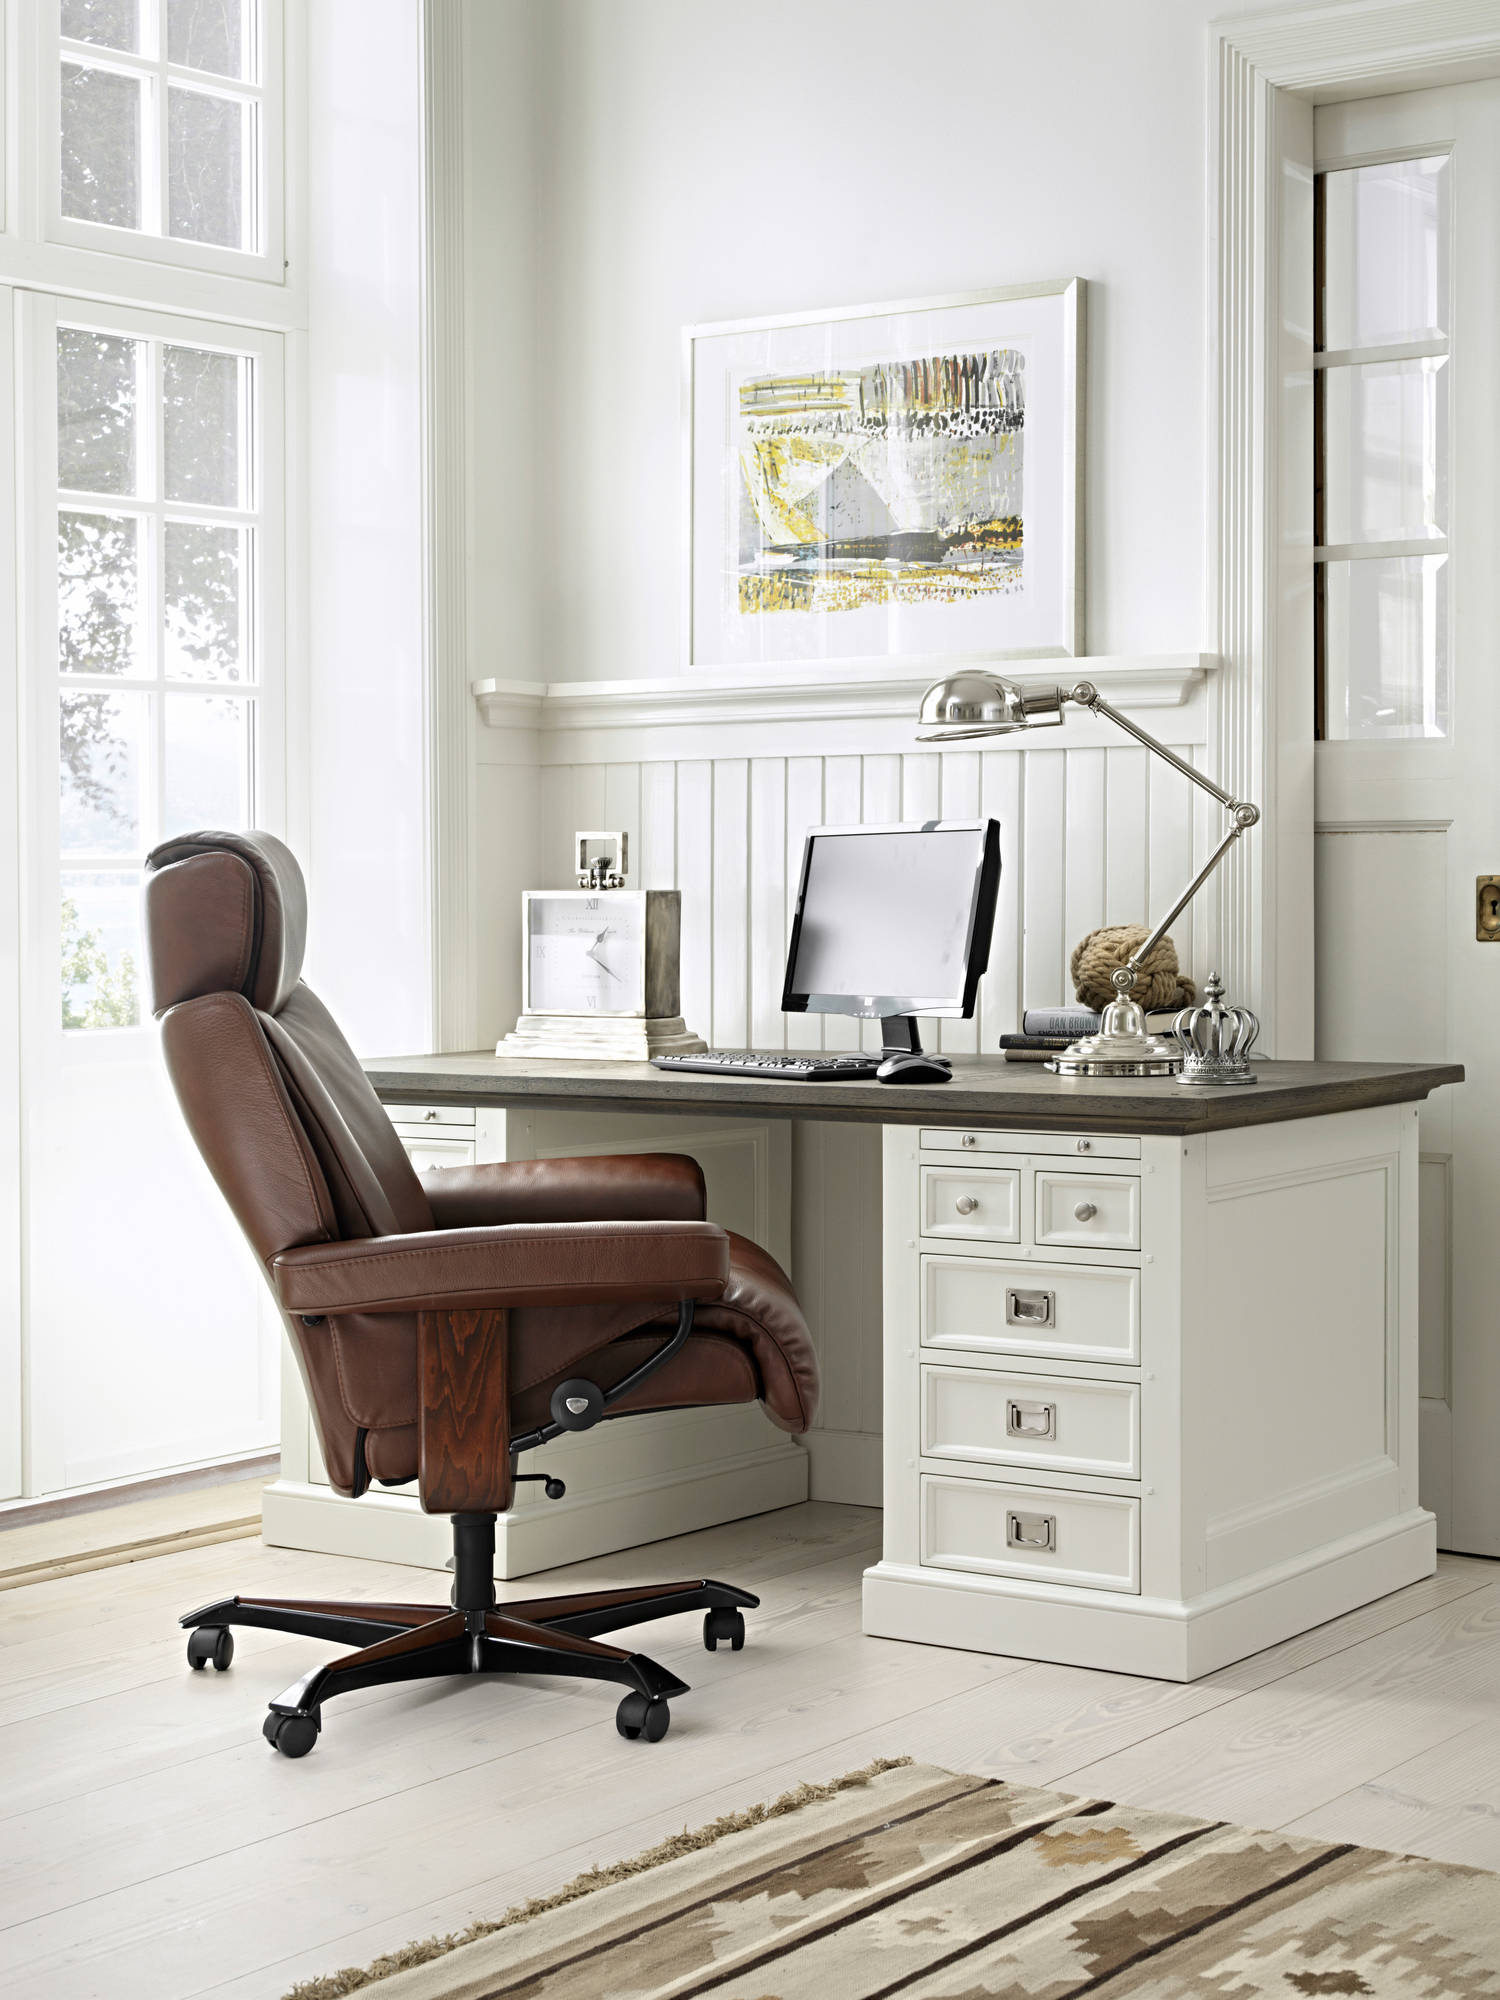 Ekornes Stressless Magic Office Chair | Luxury On Wheels throughout Kawai Leather Swivel Chairs